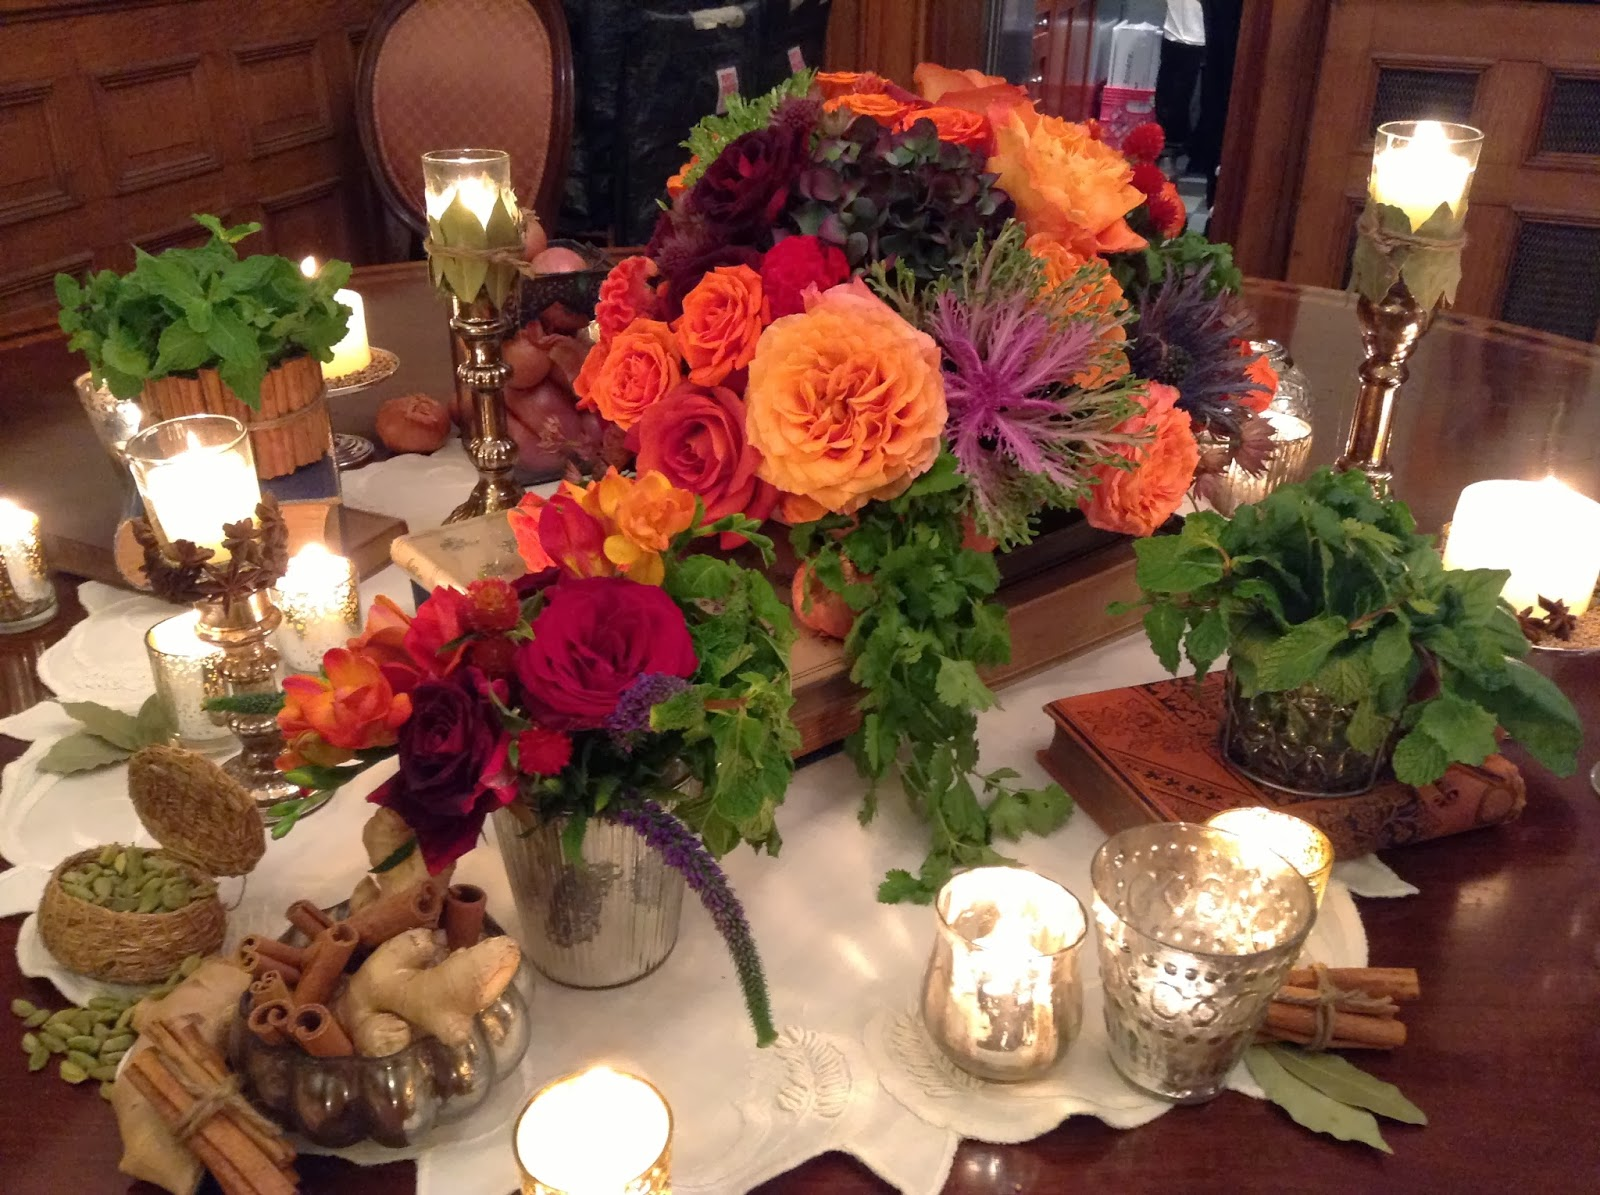 Surroundings flowers archives surrounding flowers blogsurrounding the book celebrates the pleasure of gathering around the table to share good food with family and friends izmirmasajfo Gallery